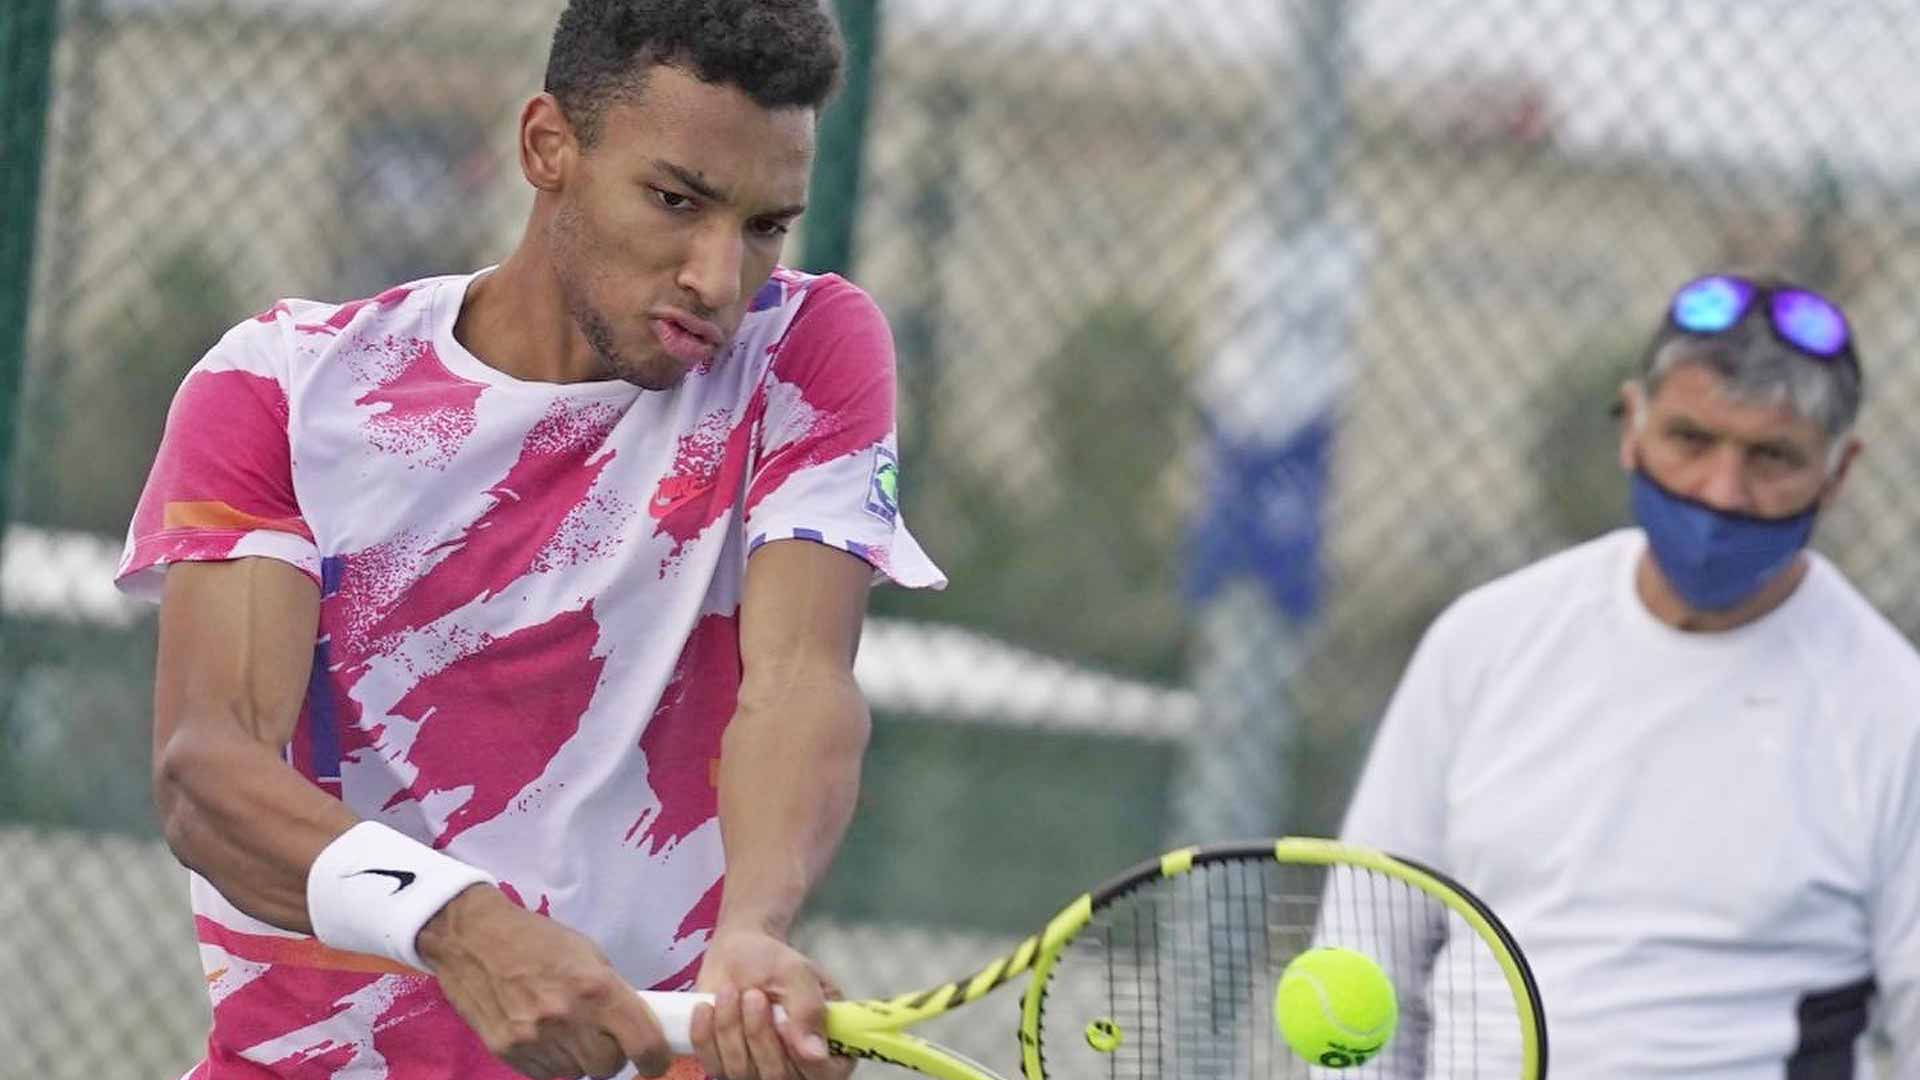 Felix Auger-Aliassime trains with Toni Nadal at the Rafa Nadal Academy by Movistar ahead of the 2021 ATP Tour season.